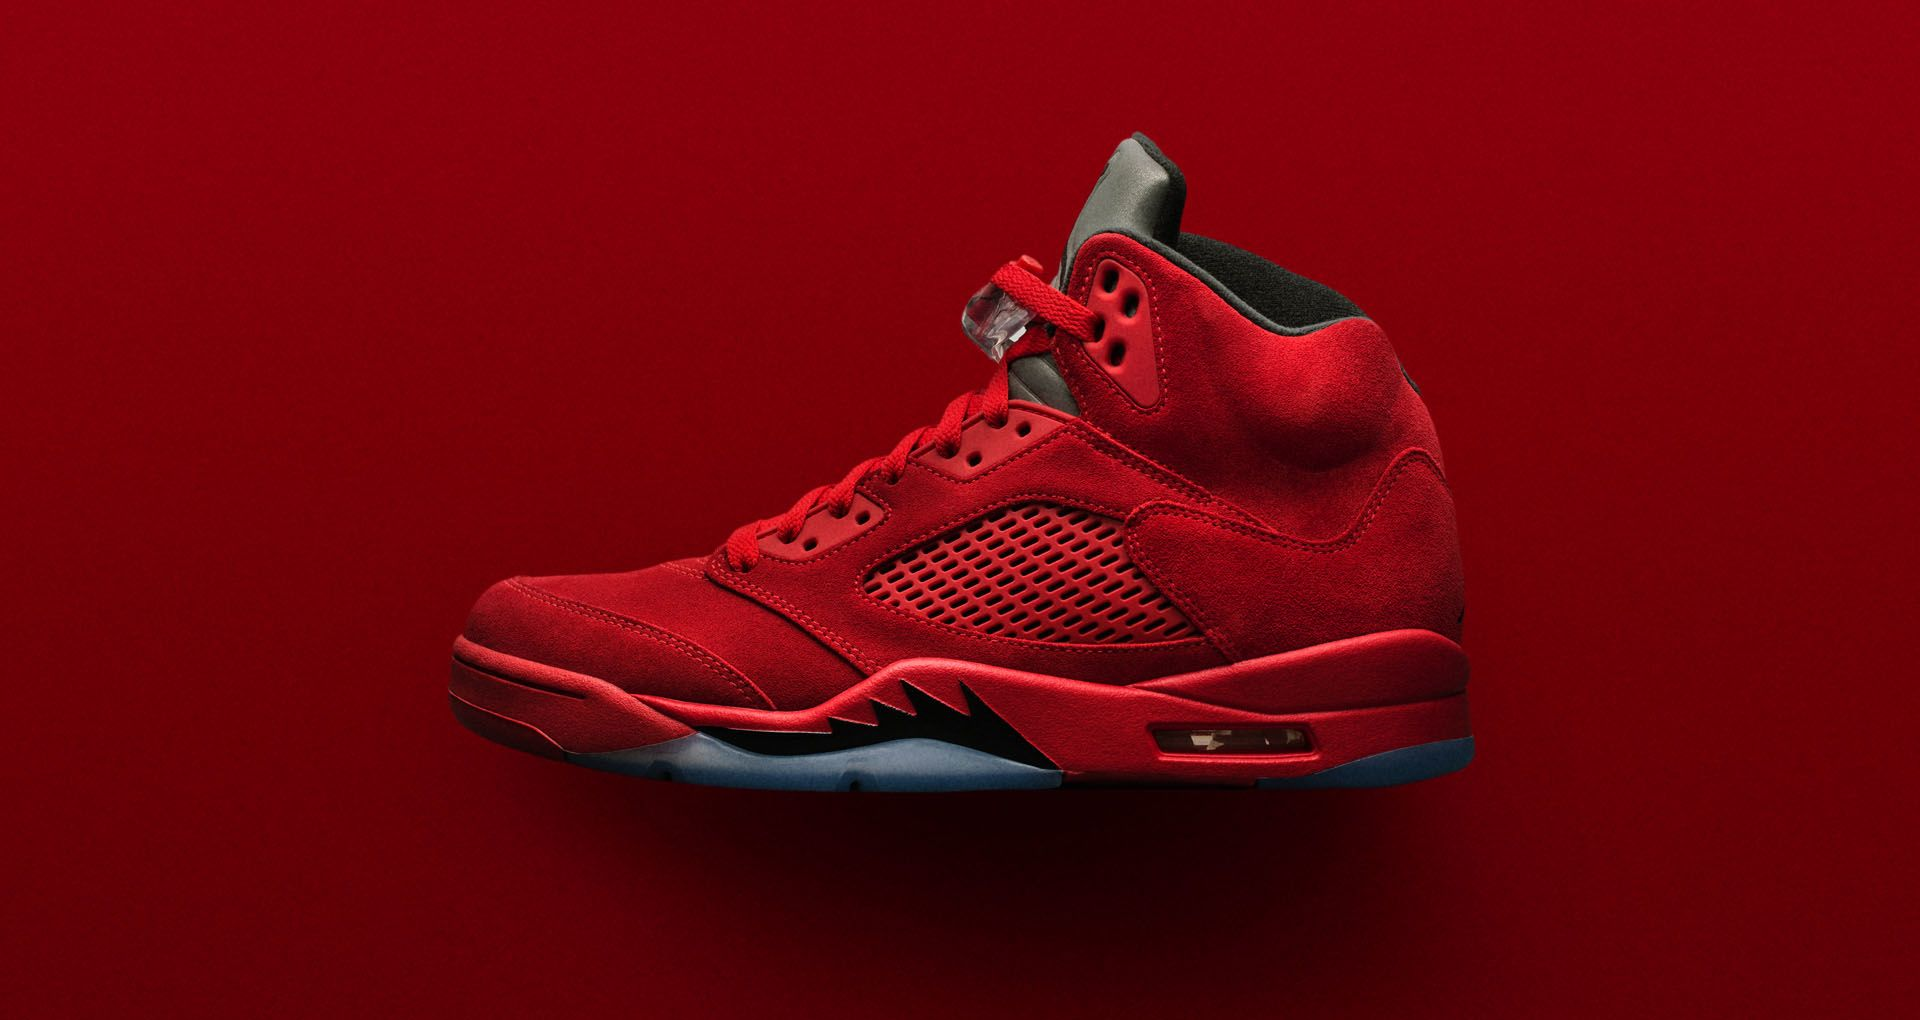 new arrival cdfda 029ee Air Jordan 5 Retro Flight Suit  University Red  Release Date. Nike⁠+ ...